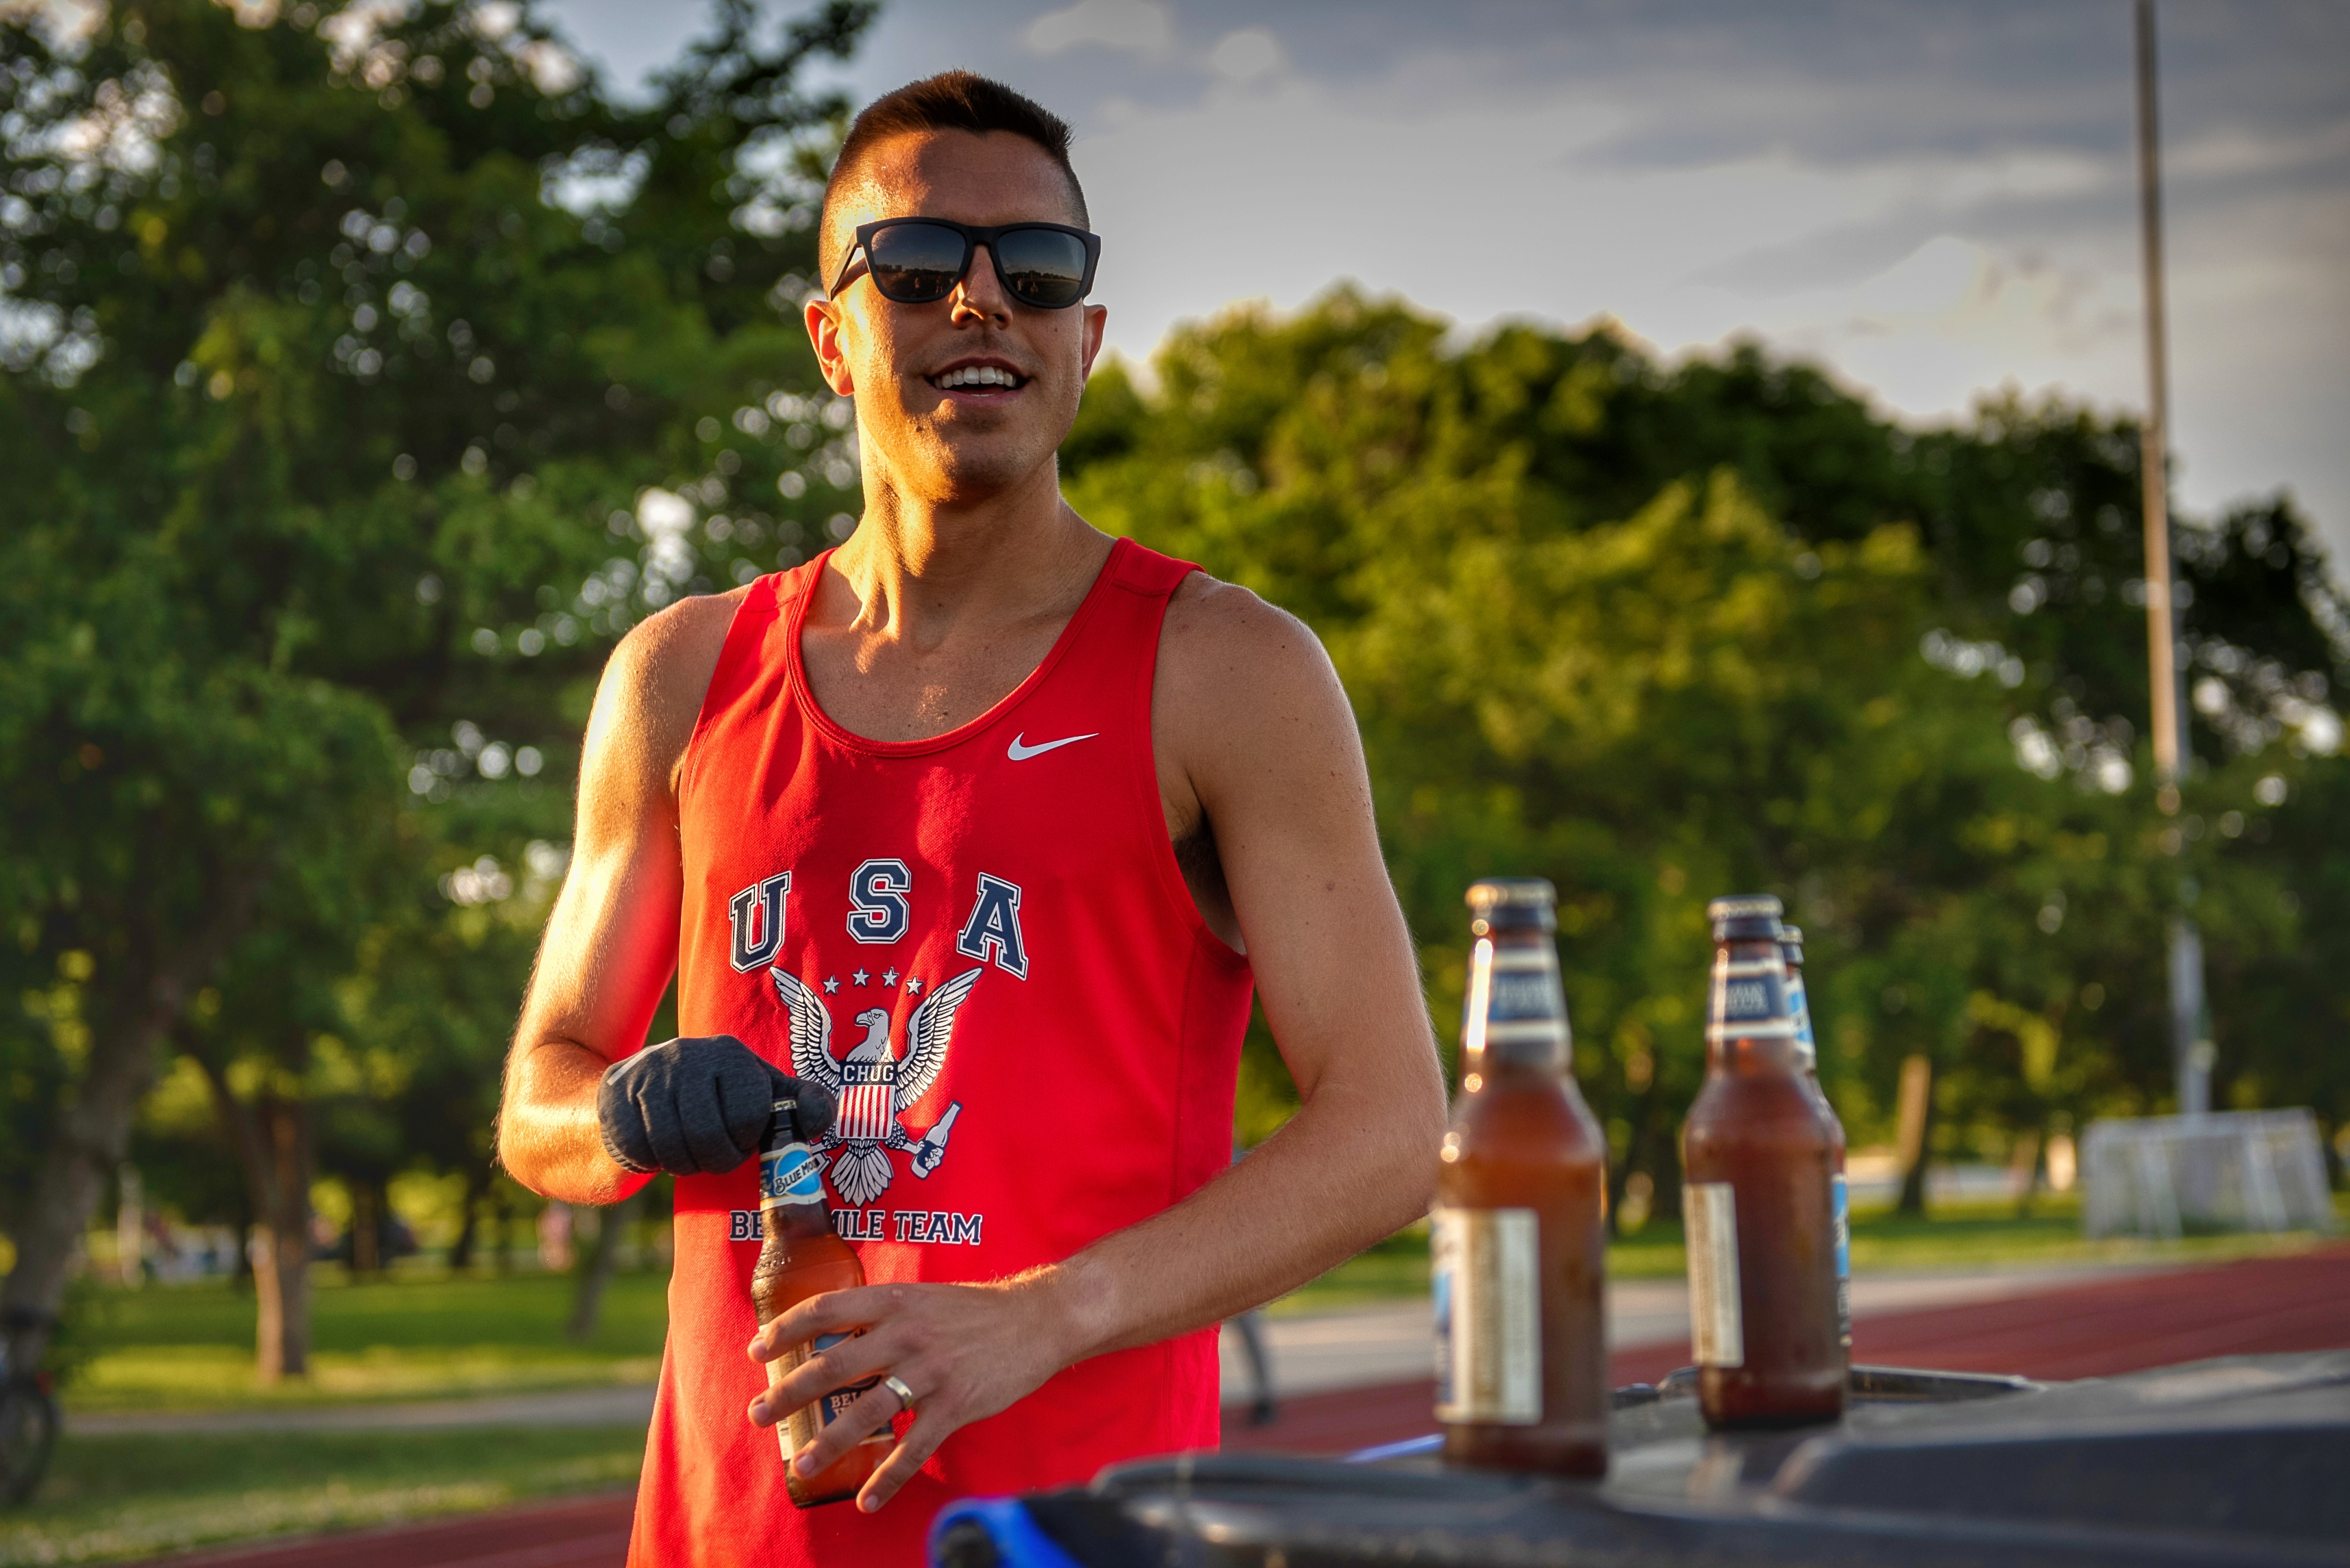 Chris Robertson 4:38 Beer Mile American Record June 2020